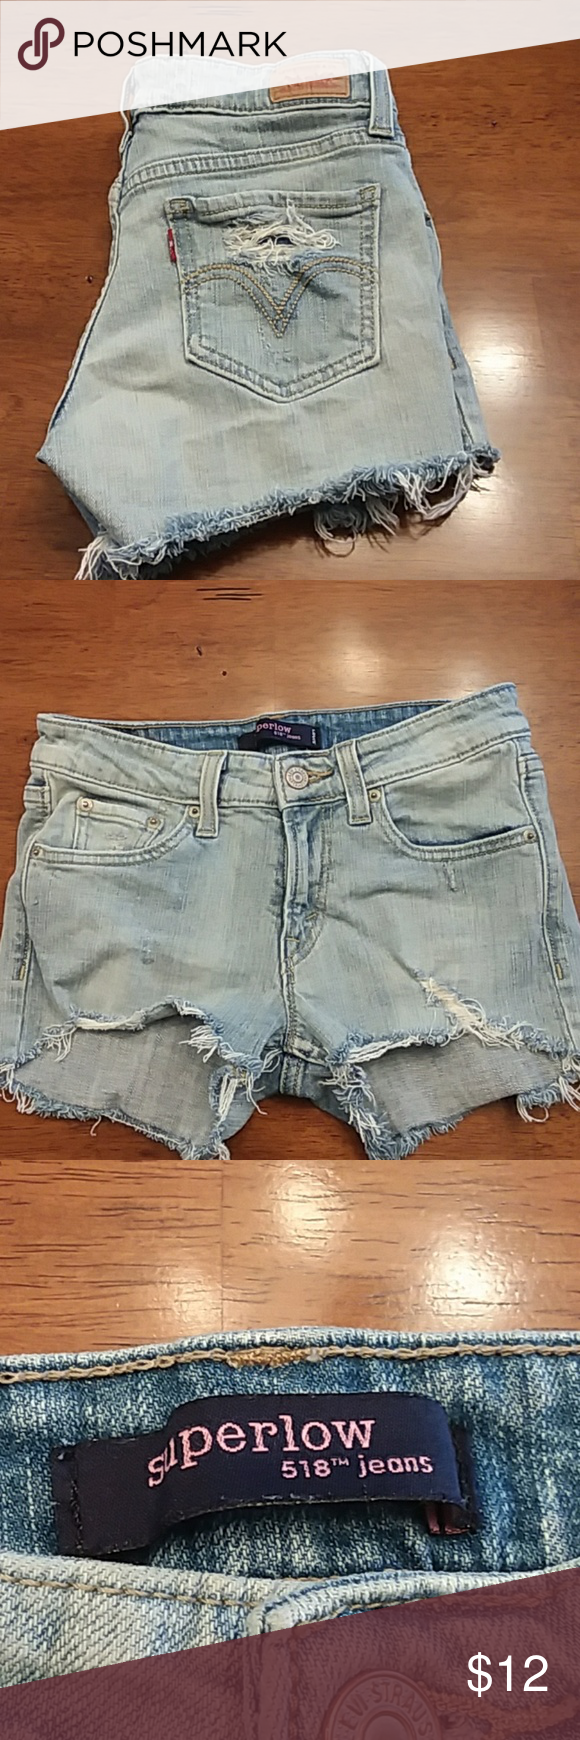 🇺🇸 4th of July SALE! 🇺🇸 Distressed Levi's Jean shorts. Cute with everything!!! Levi's Shorts Jean Shorts